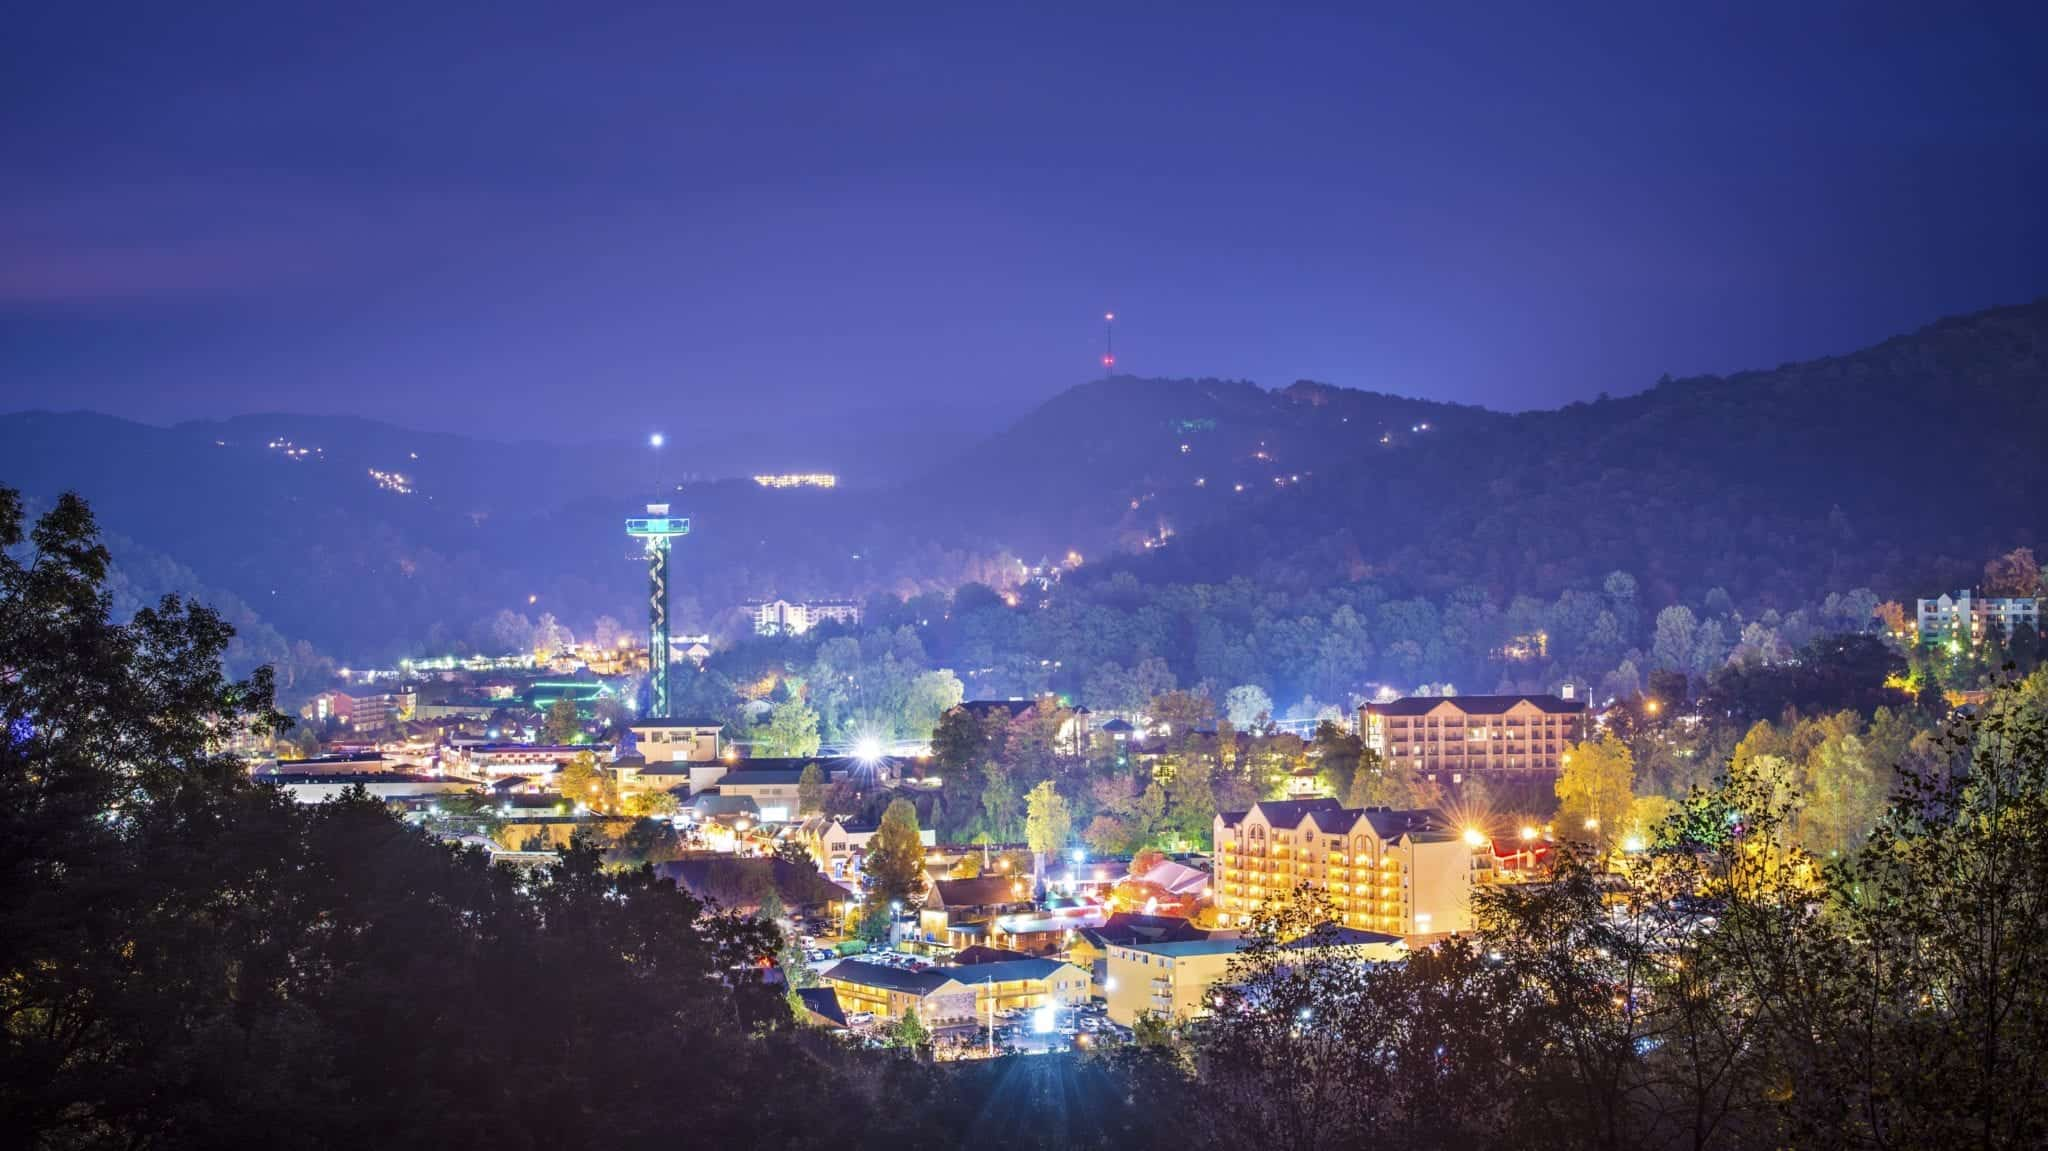 history of Gatlinburg